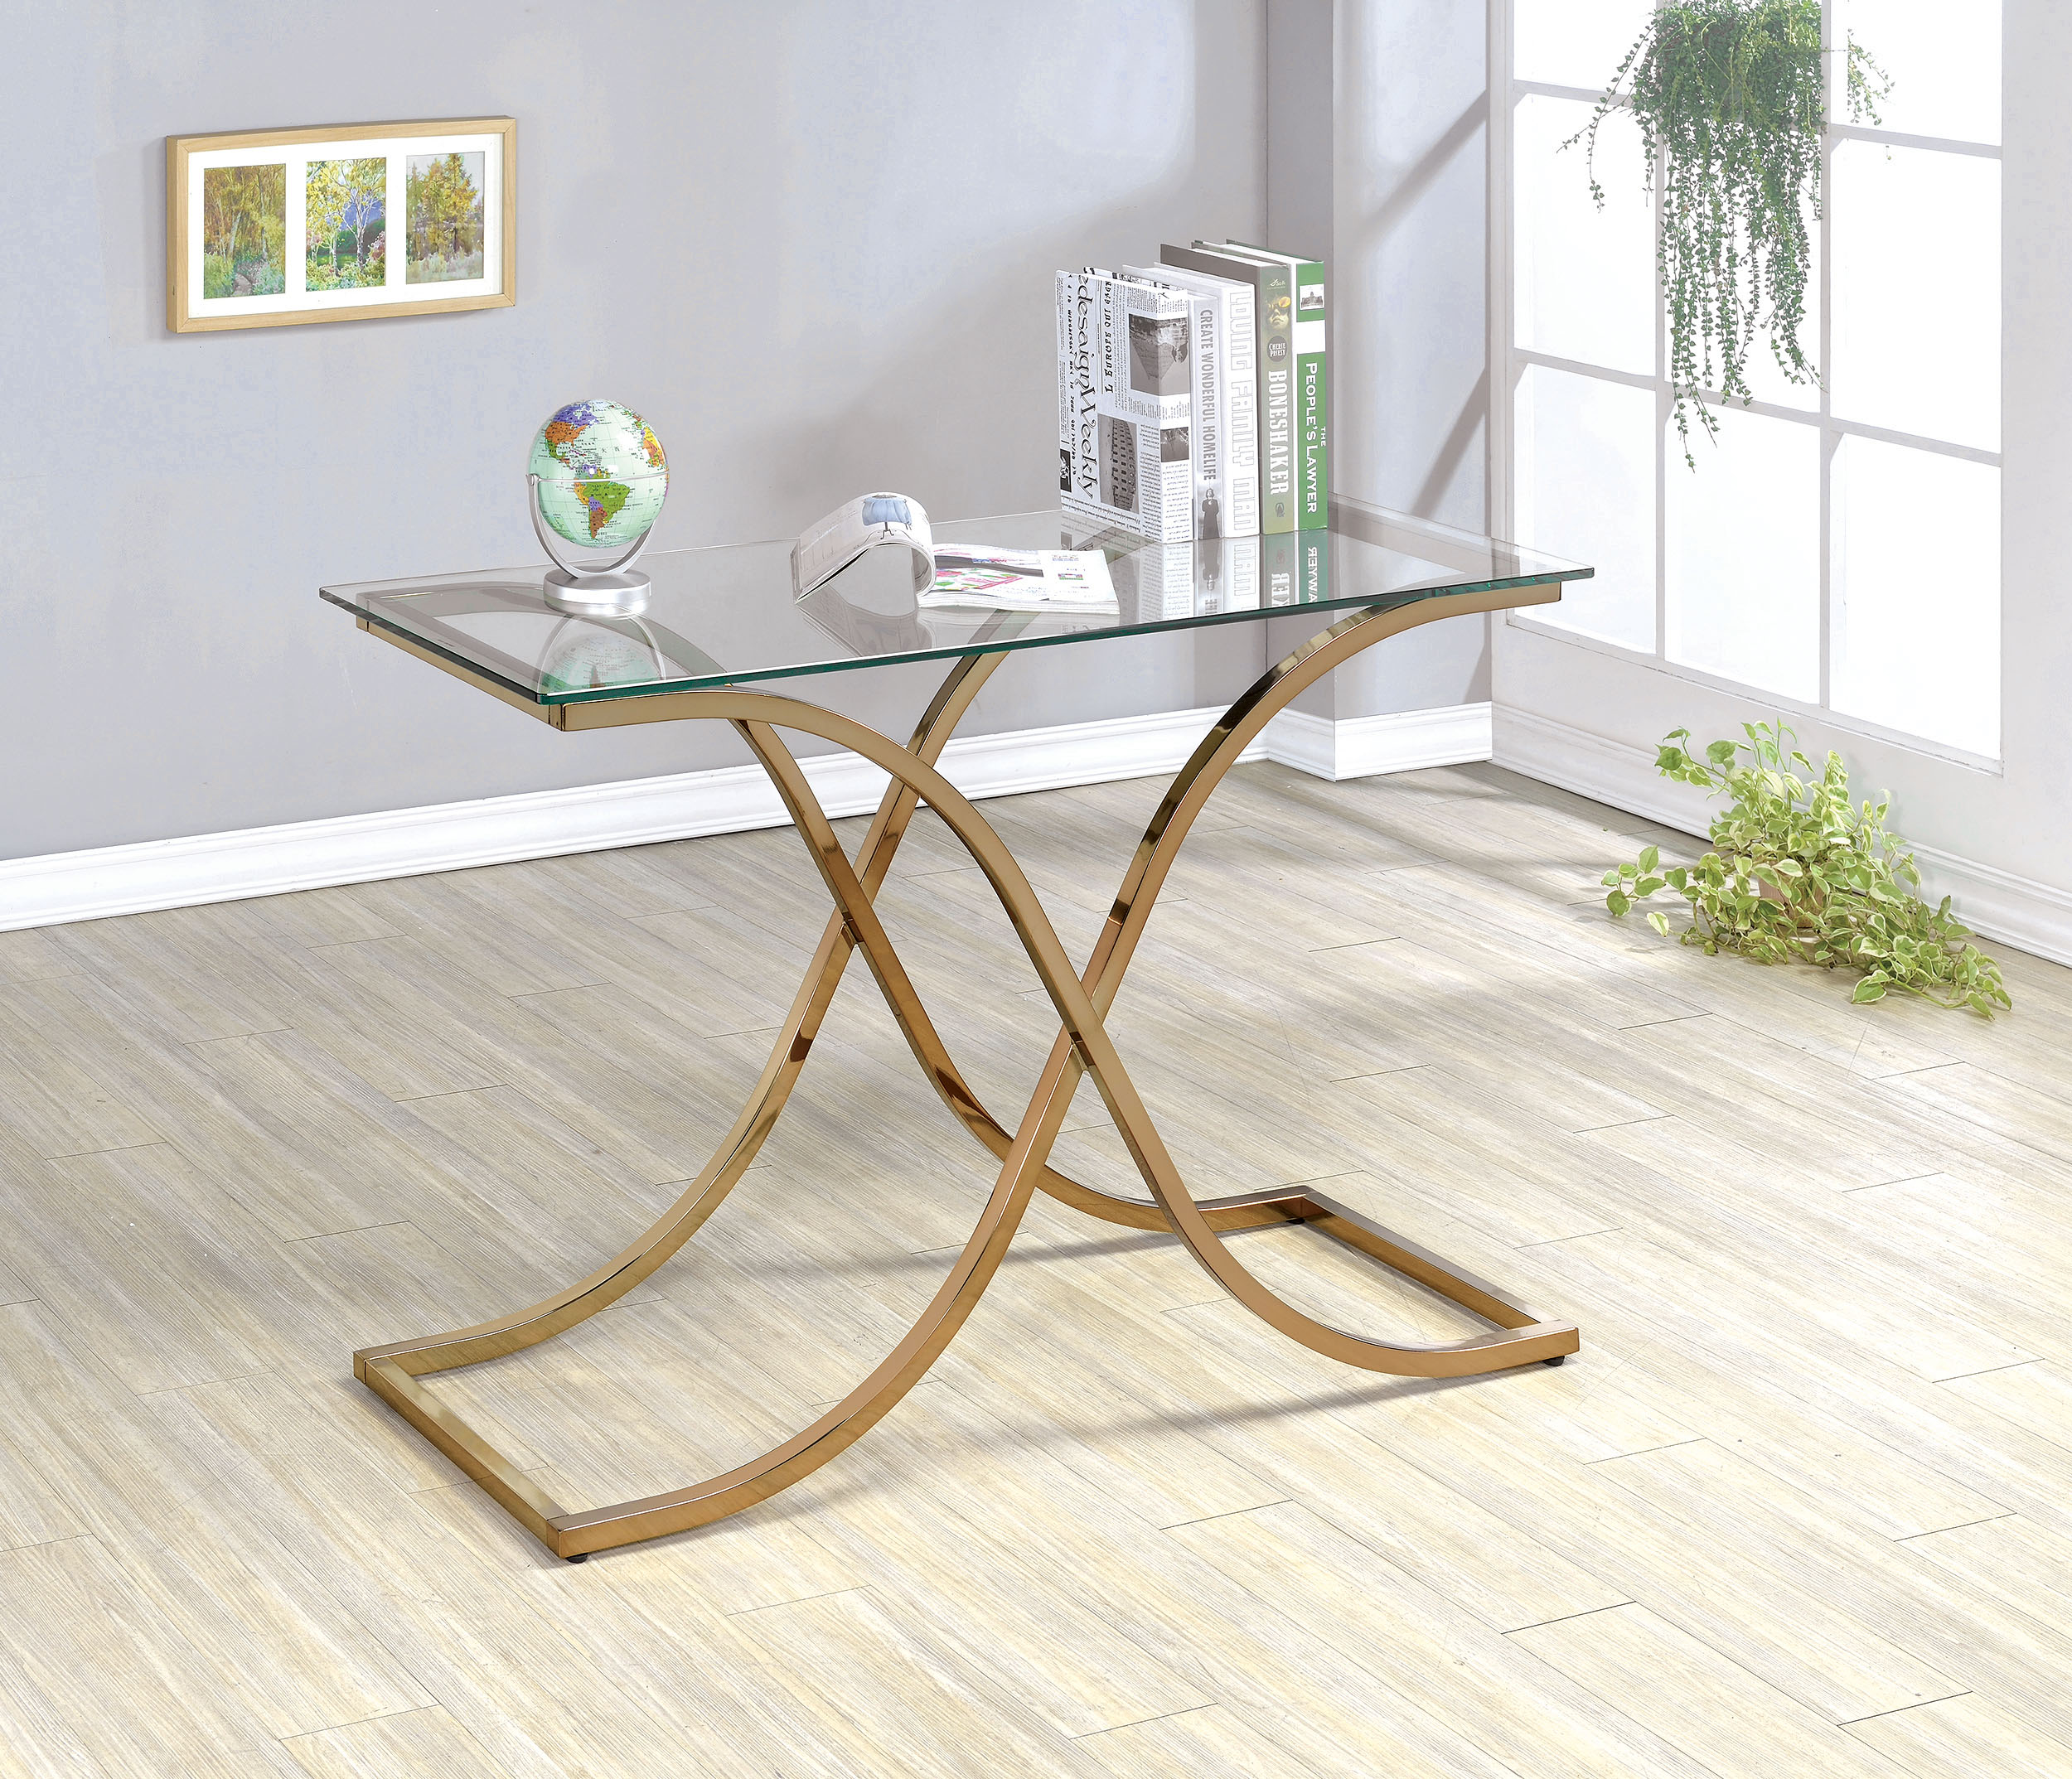 Furniture of America Lexine Curved X-Frame Champagne Side Table